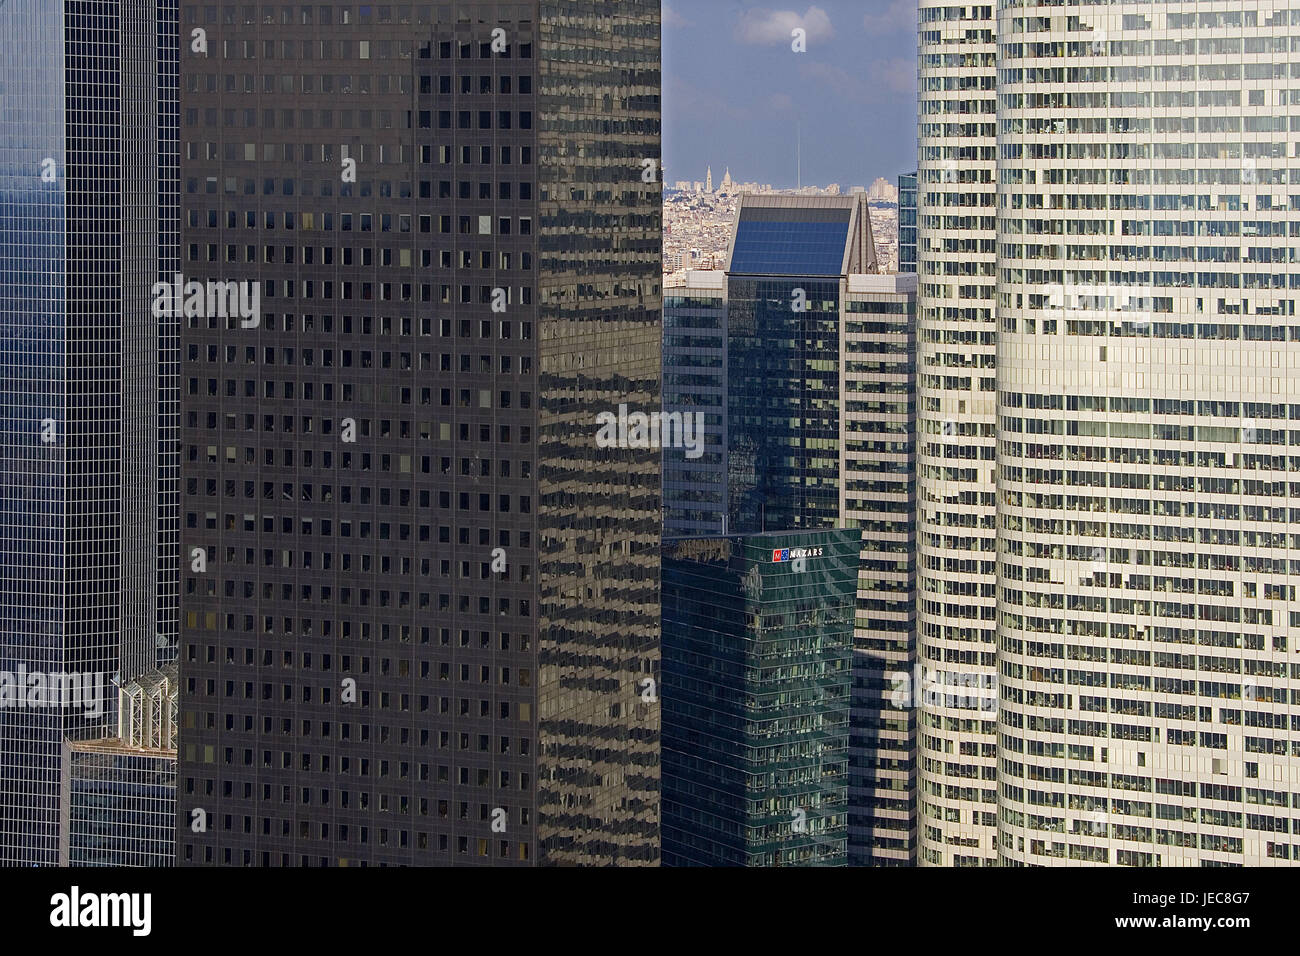 France, Paris, La Defense District, high-rise office blocks, detail, capital, business centre, high rises, buildings, Stock Photo